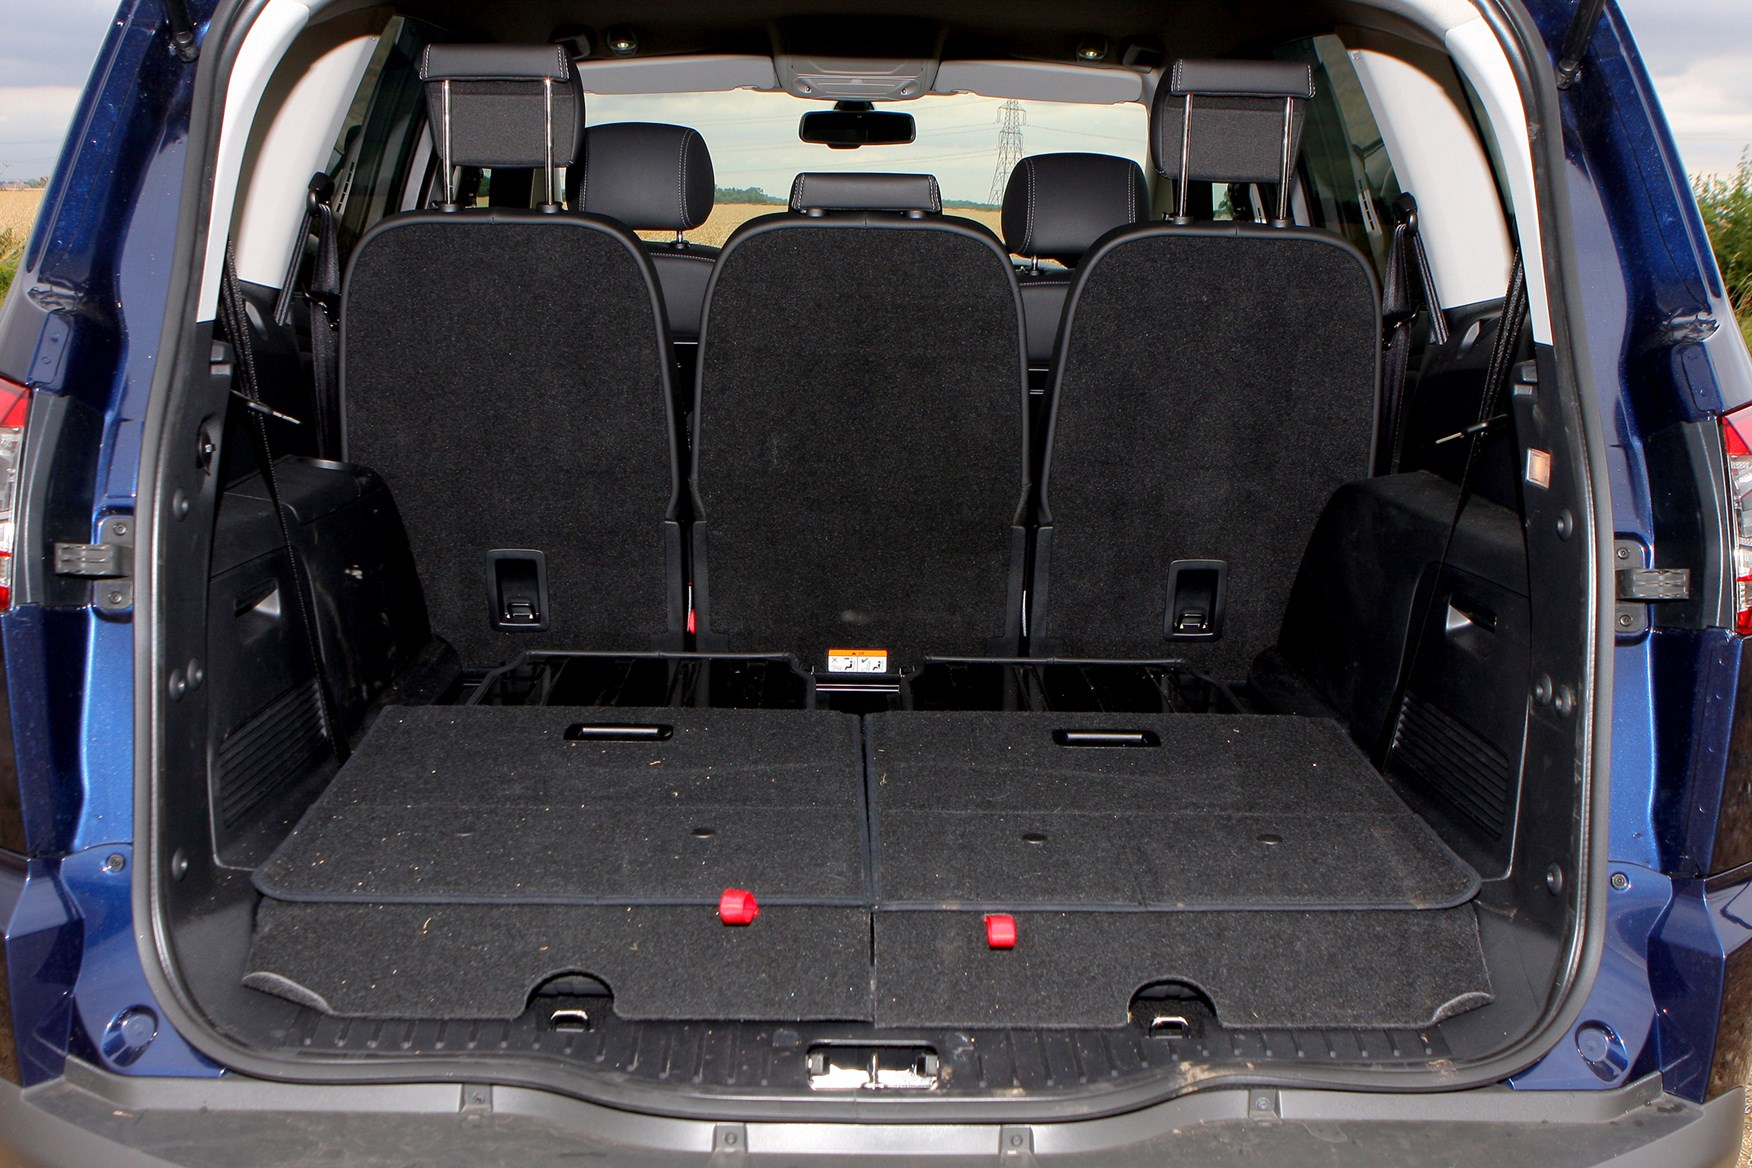 Ford Escape Dimensions >> Ford S-MAX Estate Review (2006 - 2014) | Parkers